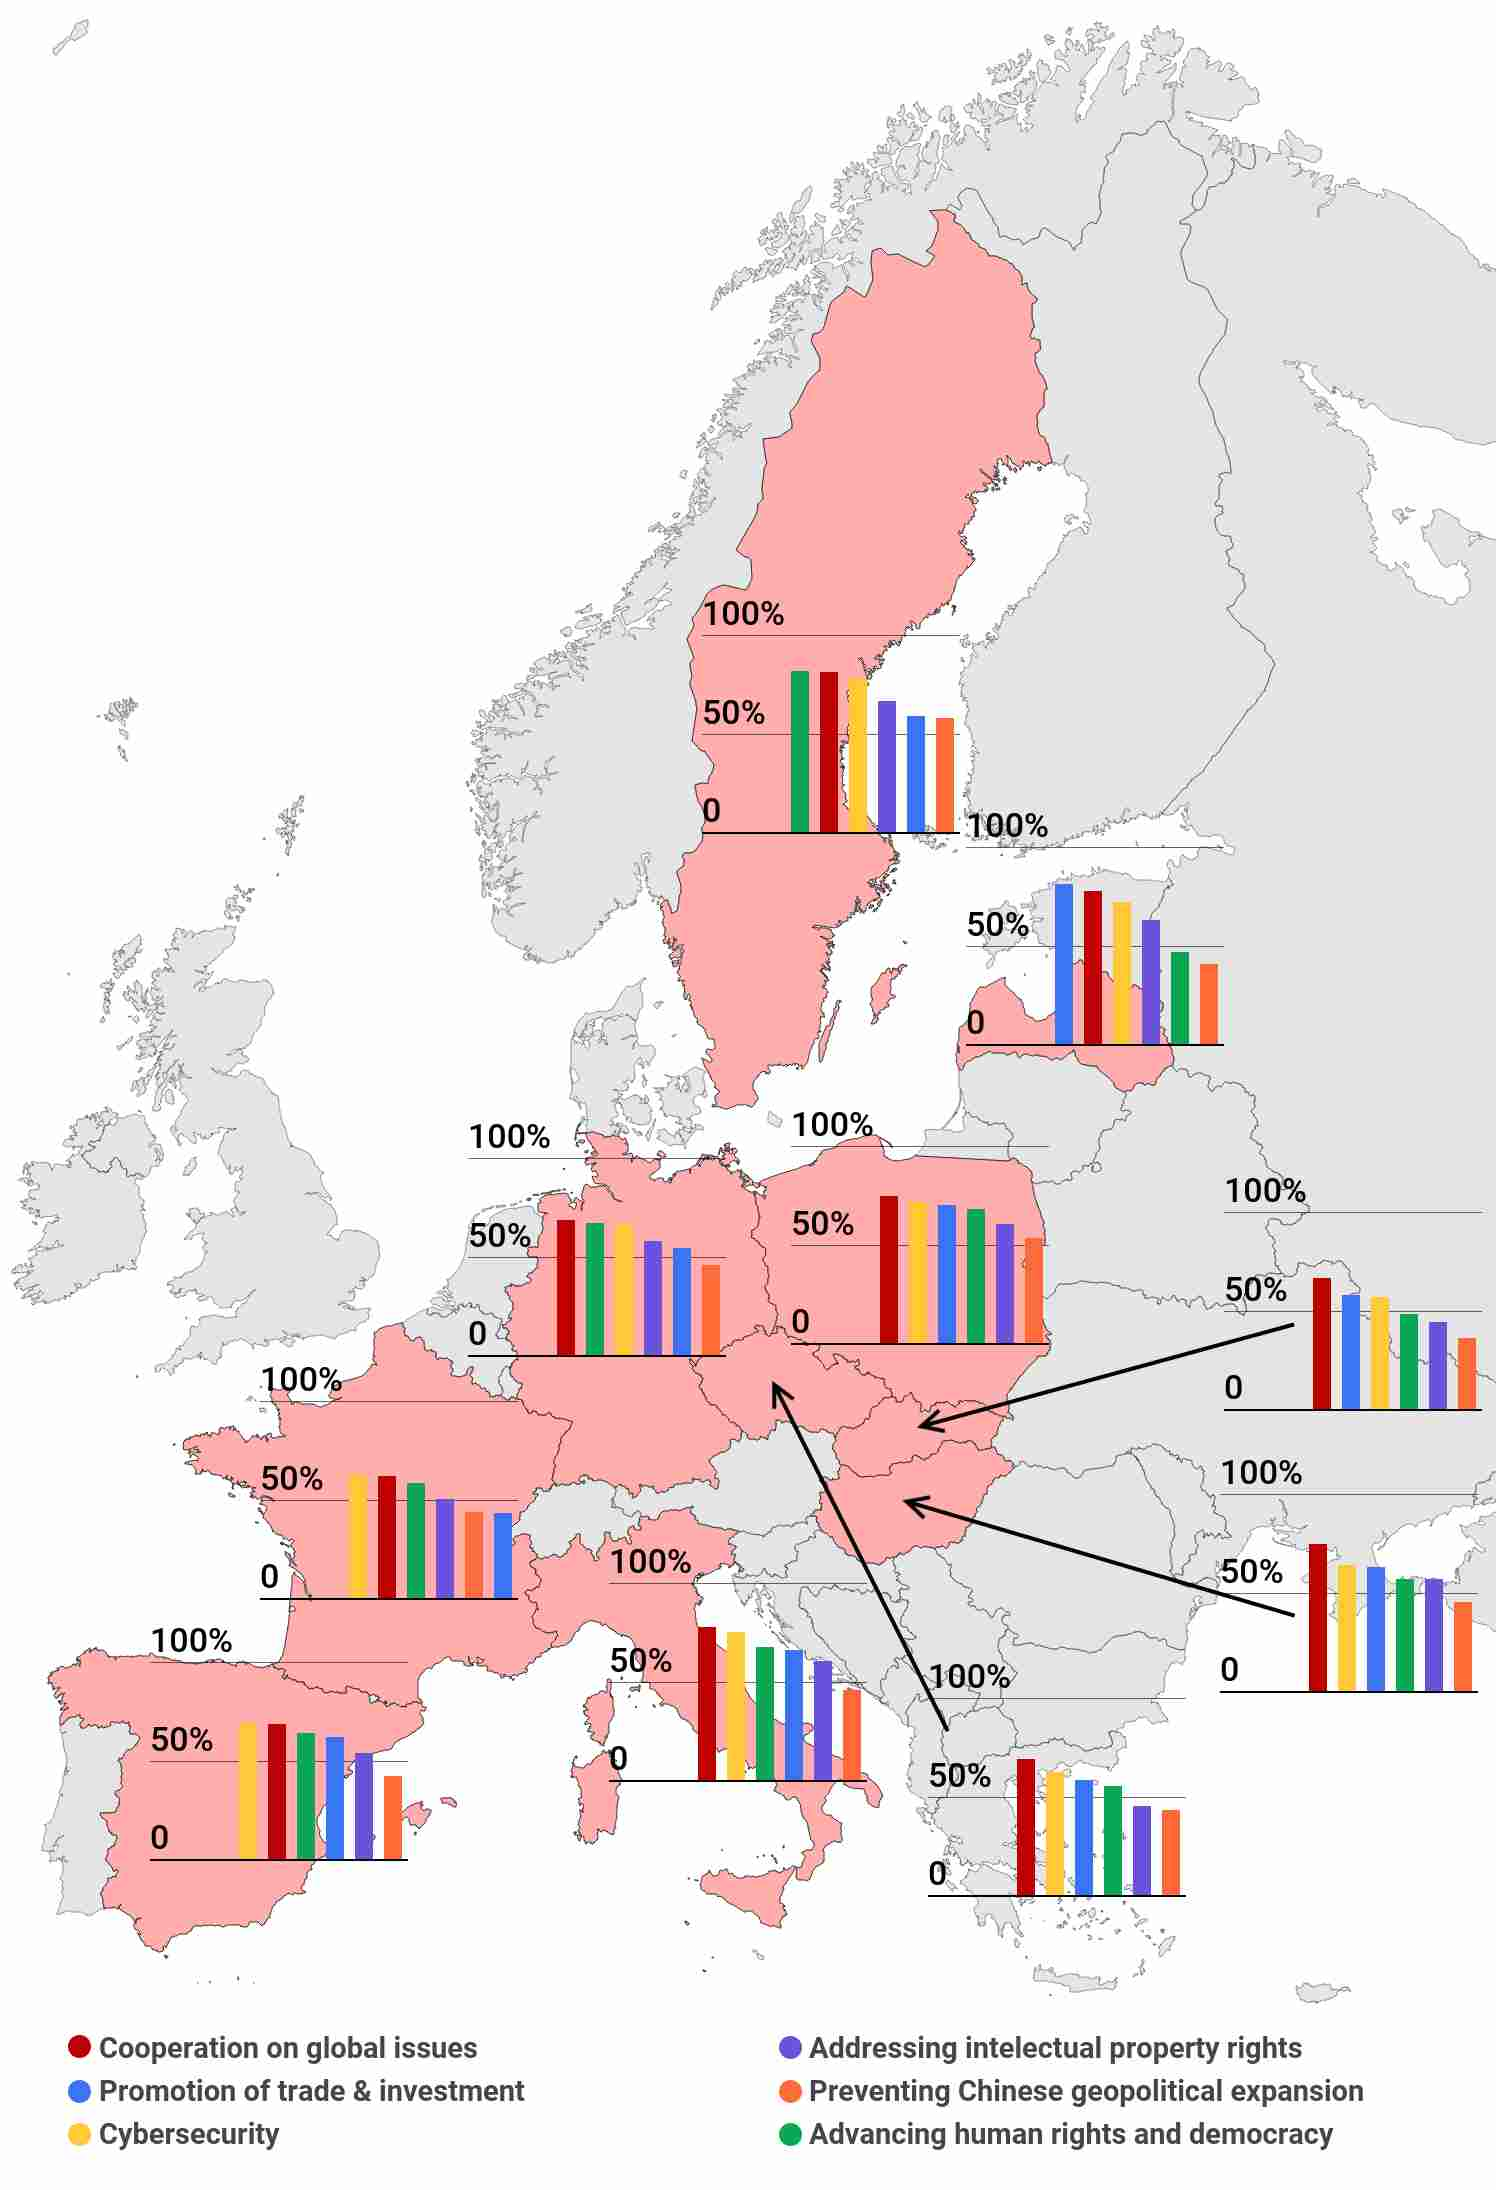 Foreign policy priorities on China across European countries (% of respondents agreeing) Source: CEIAS & Sinophone Borderlands.